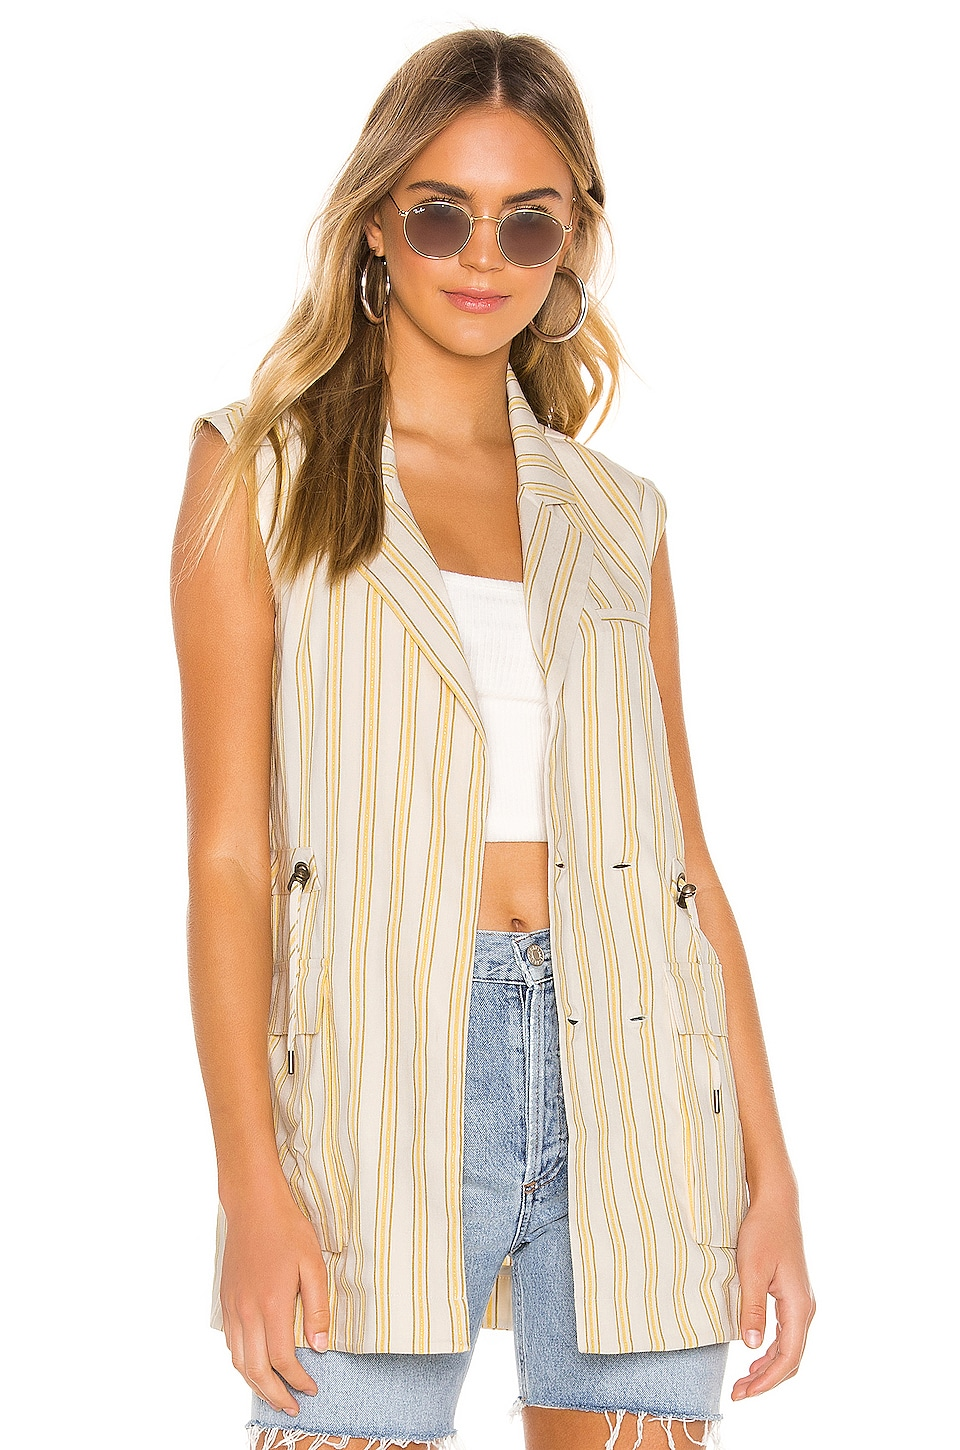 Tularosa Perla Vest in Ivy & Yellow Stripe